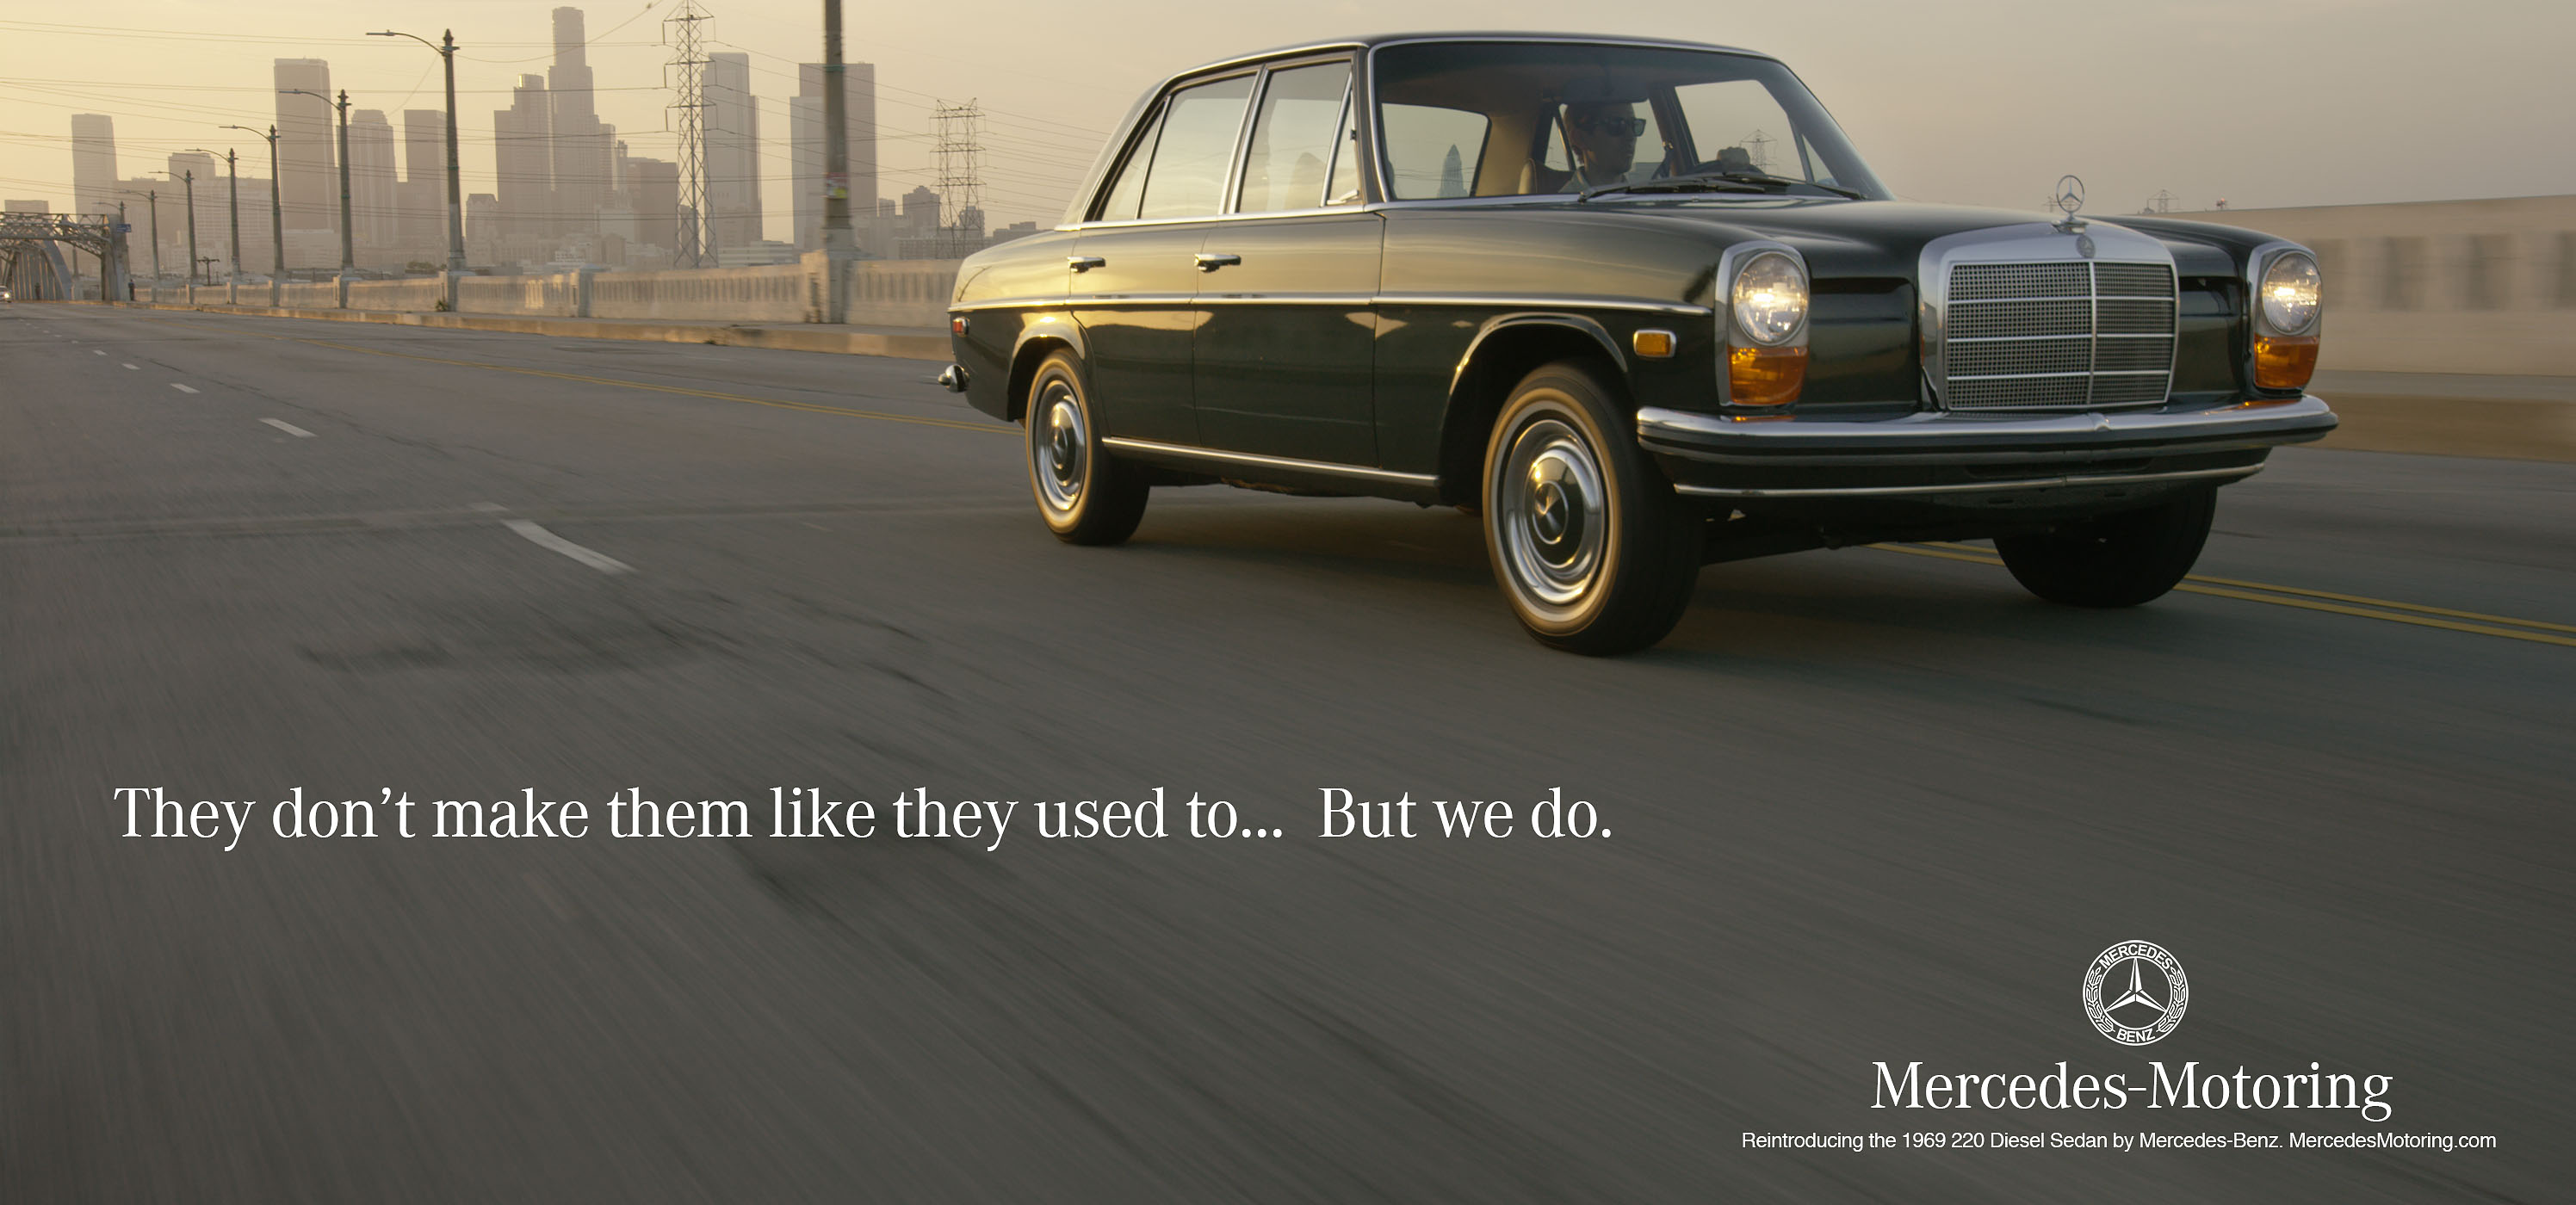 mercedes motoring ad mock up 02